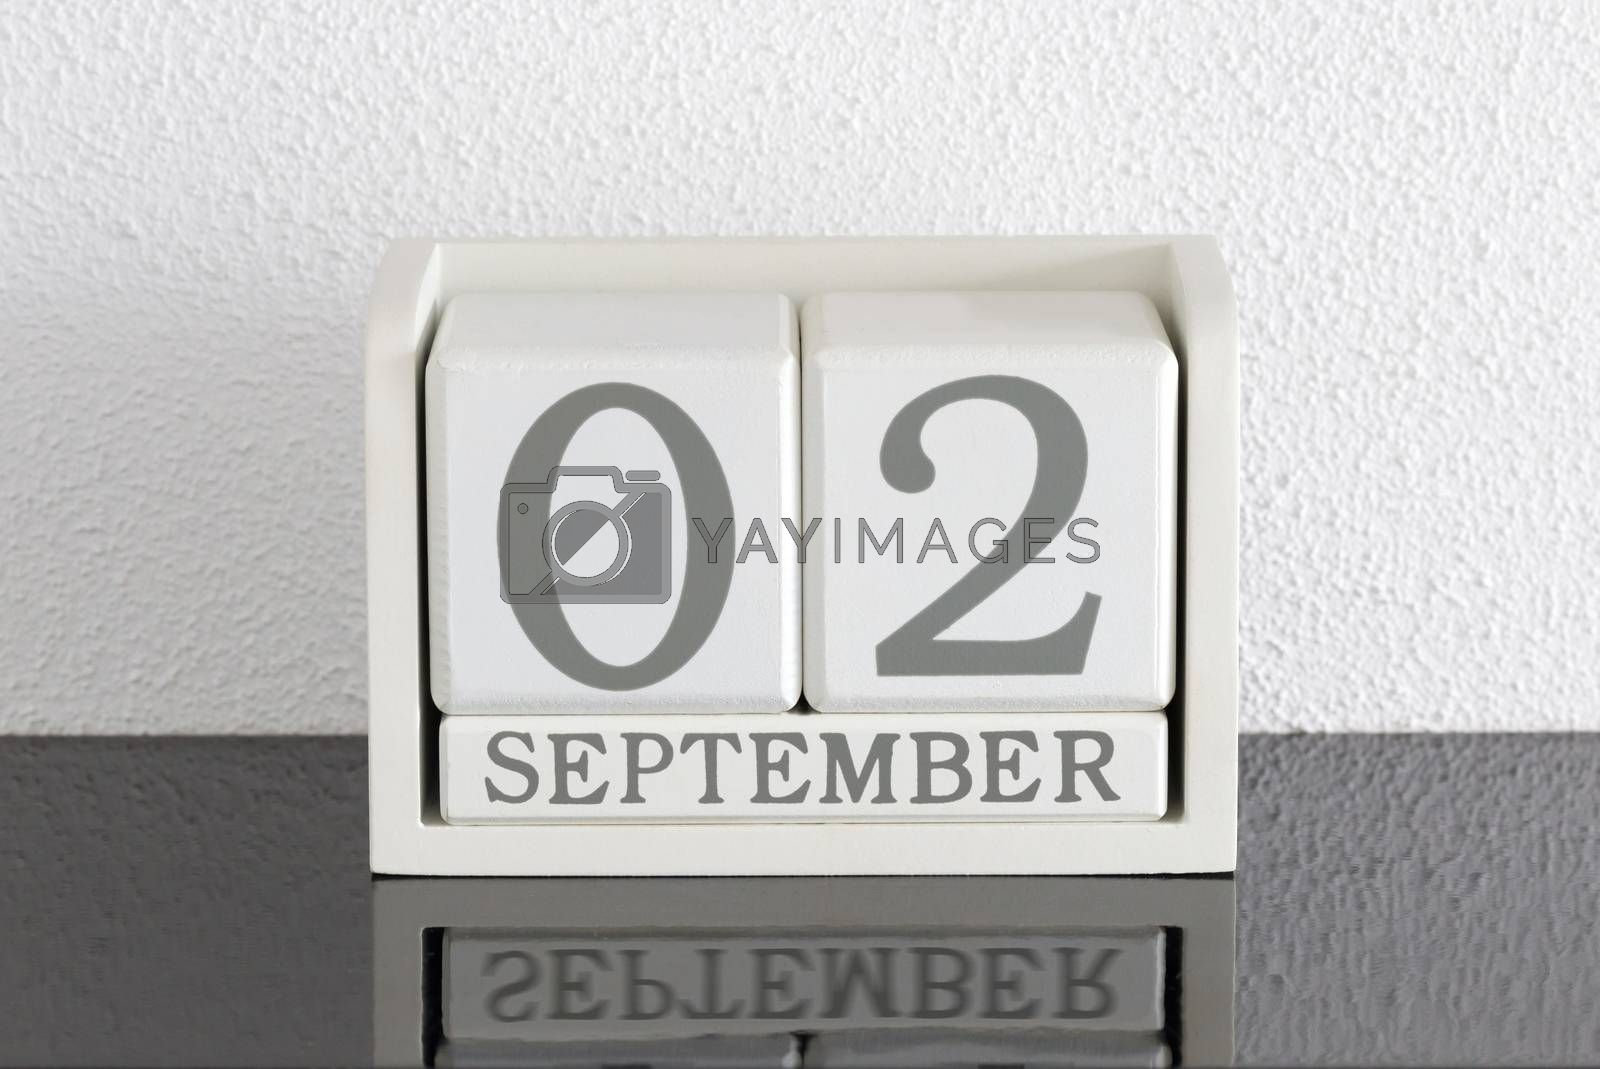 White block calendar present date 3 and month September by michaklootwijk